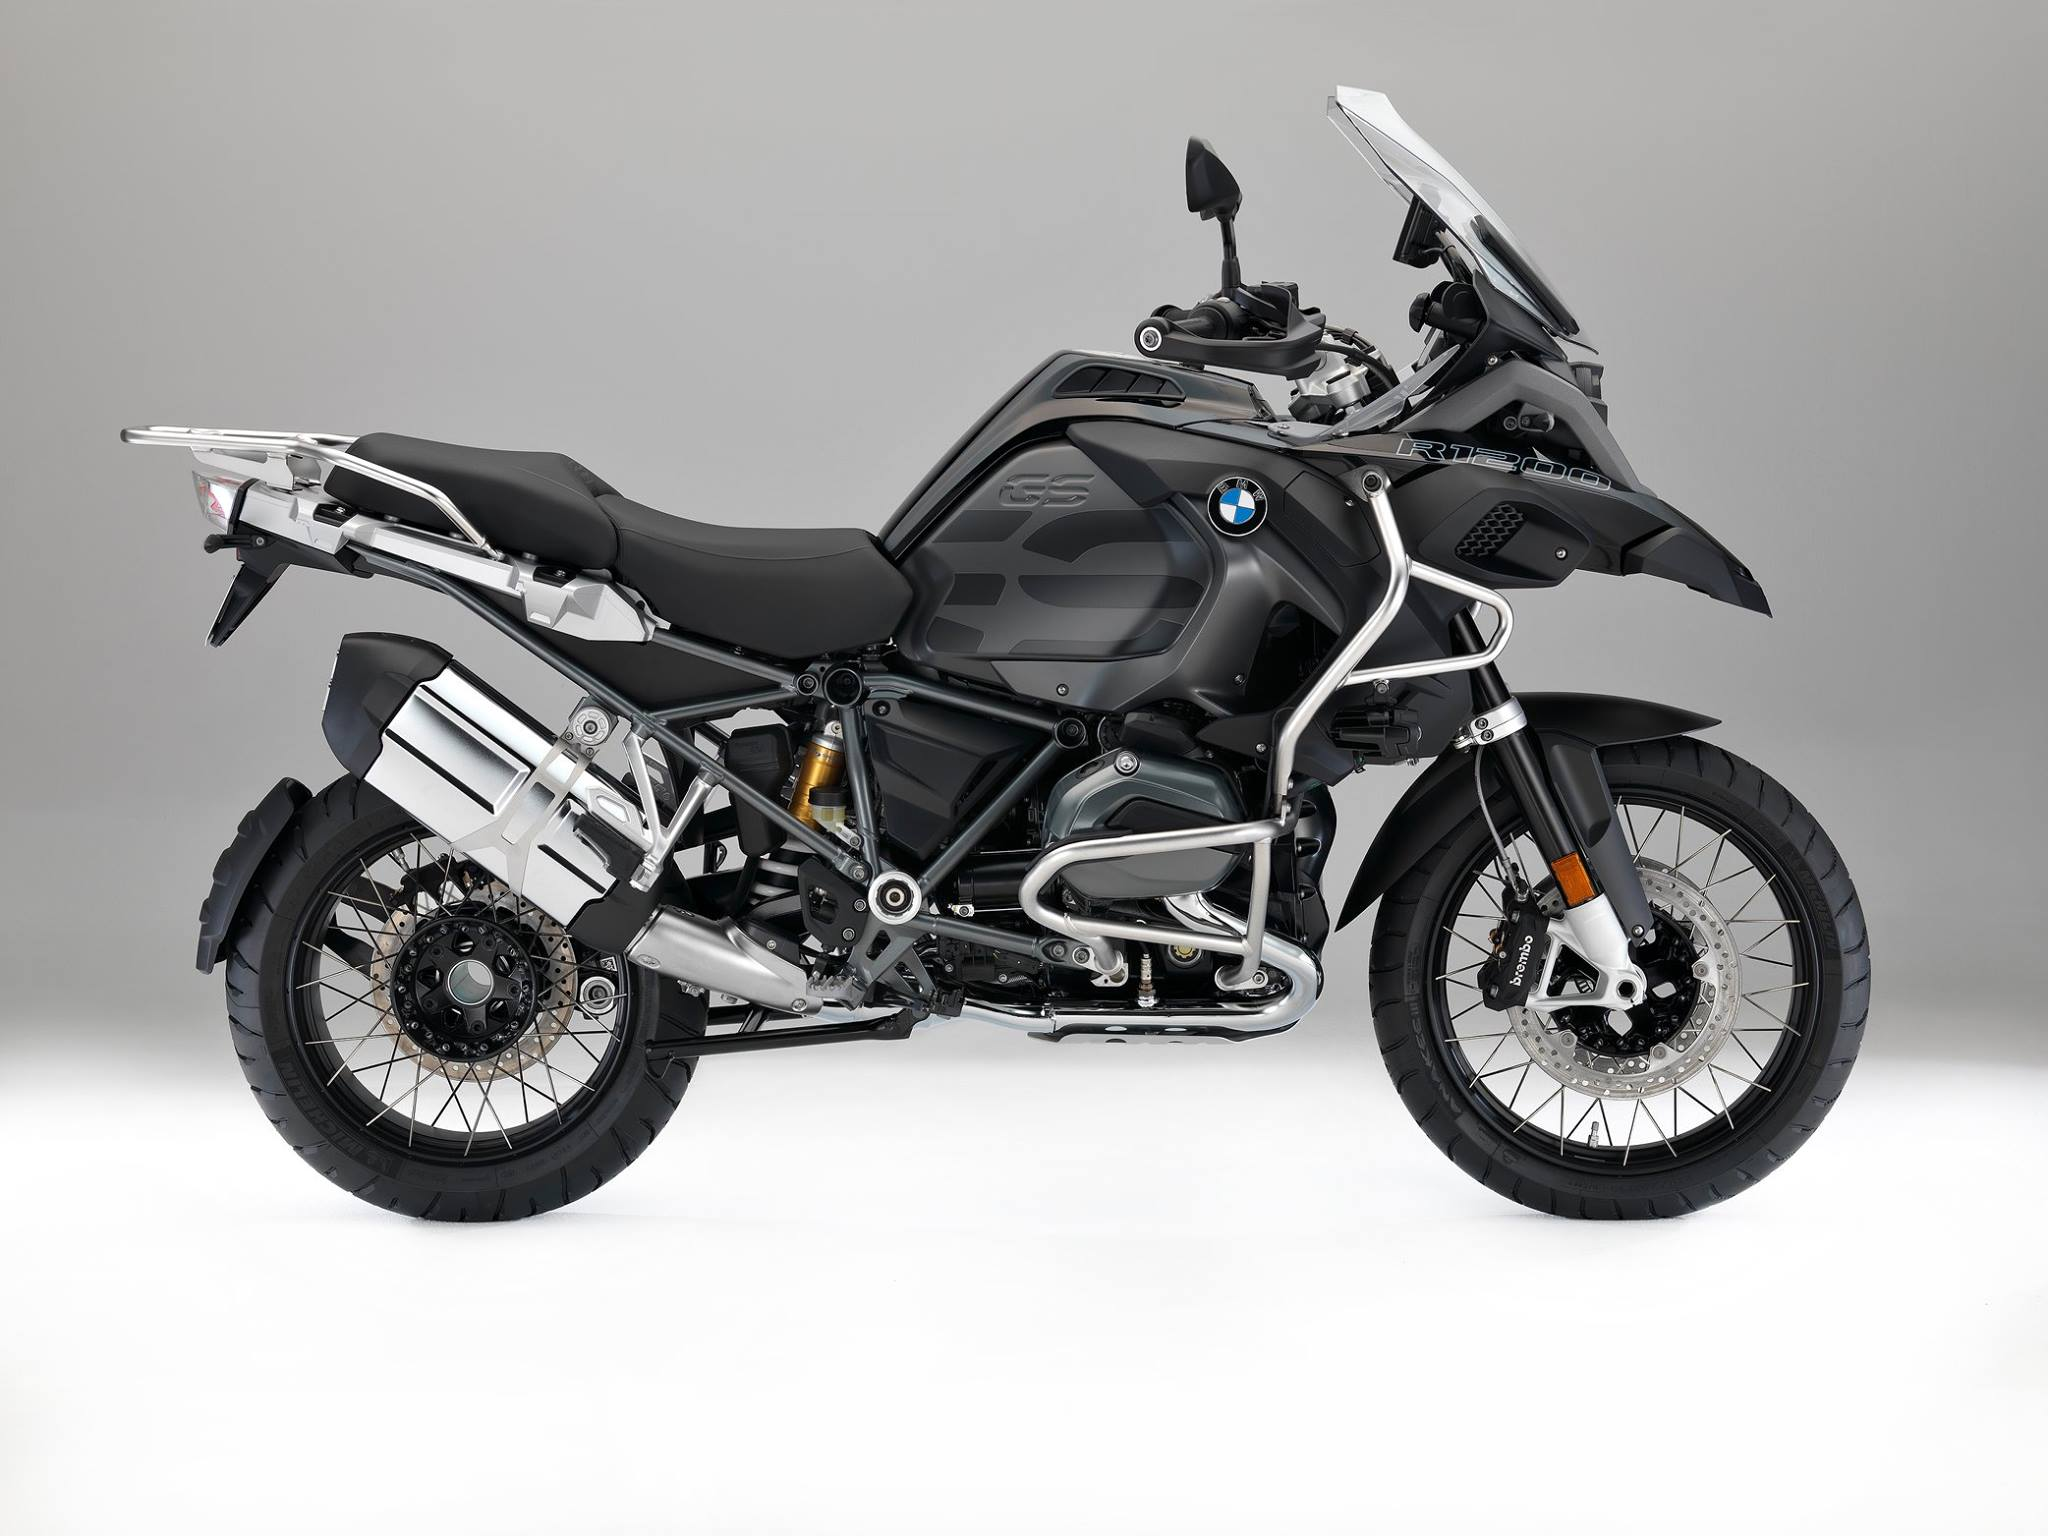 2017-bmw-r1200gs-adventure-triple-black-looks-sleek-109038_1.jpg